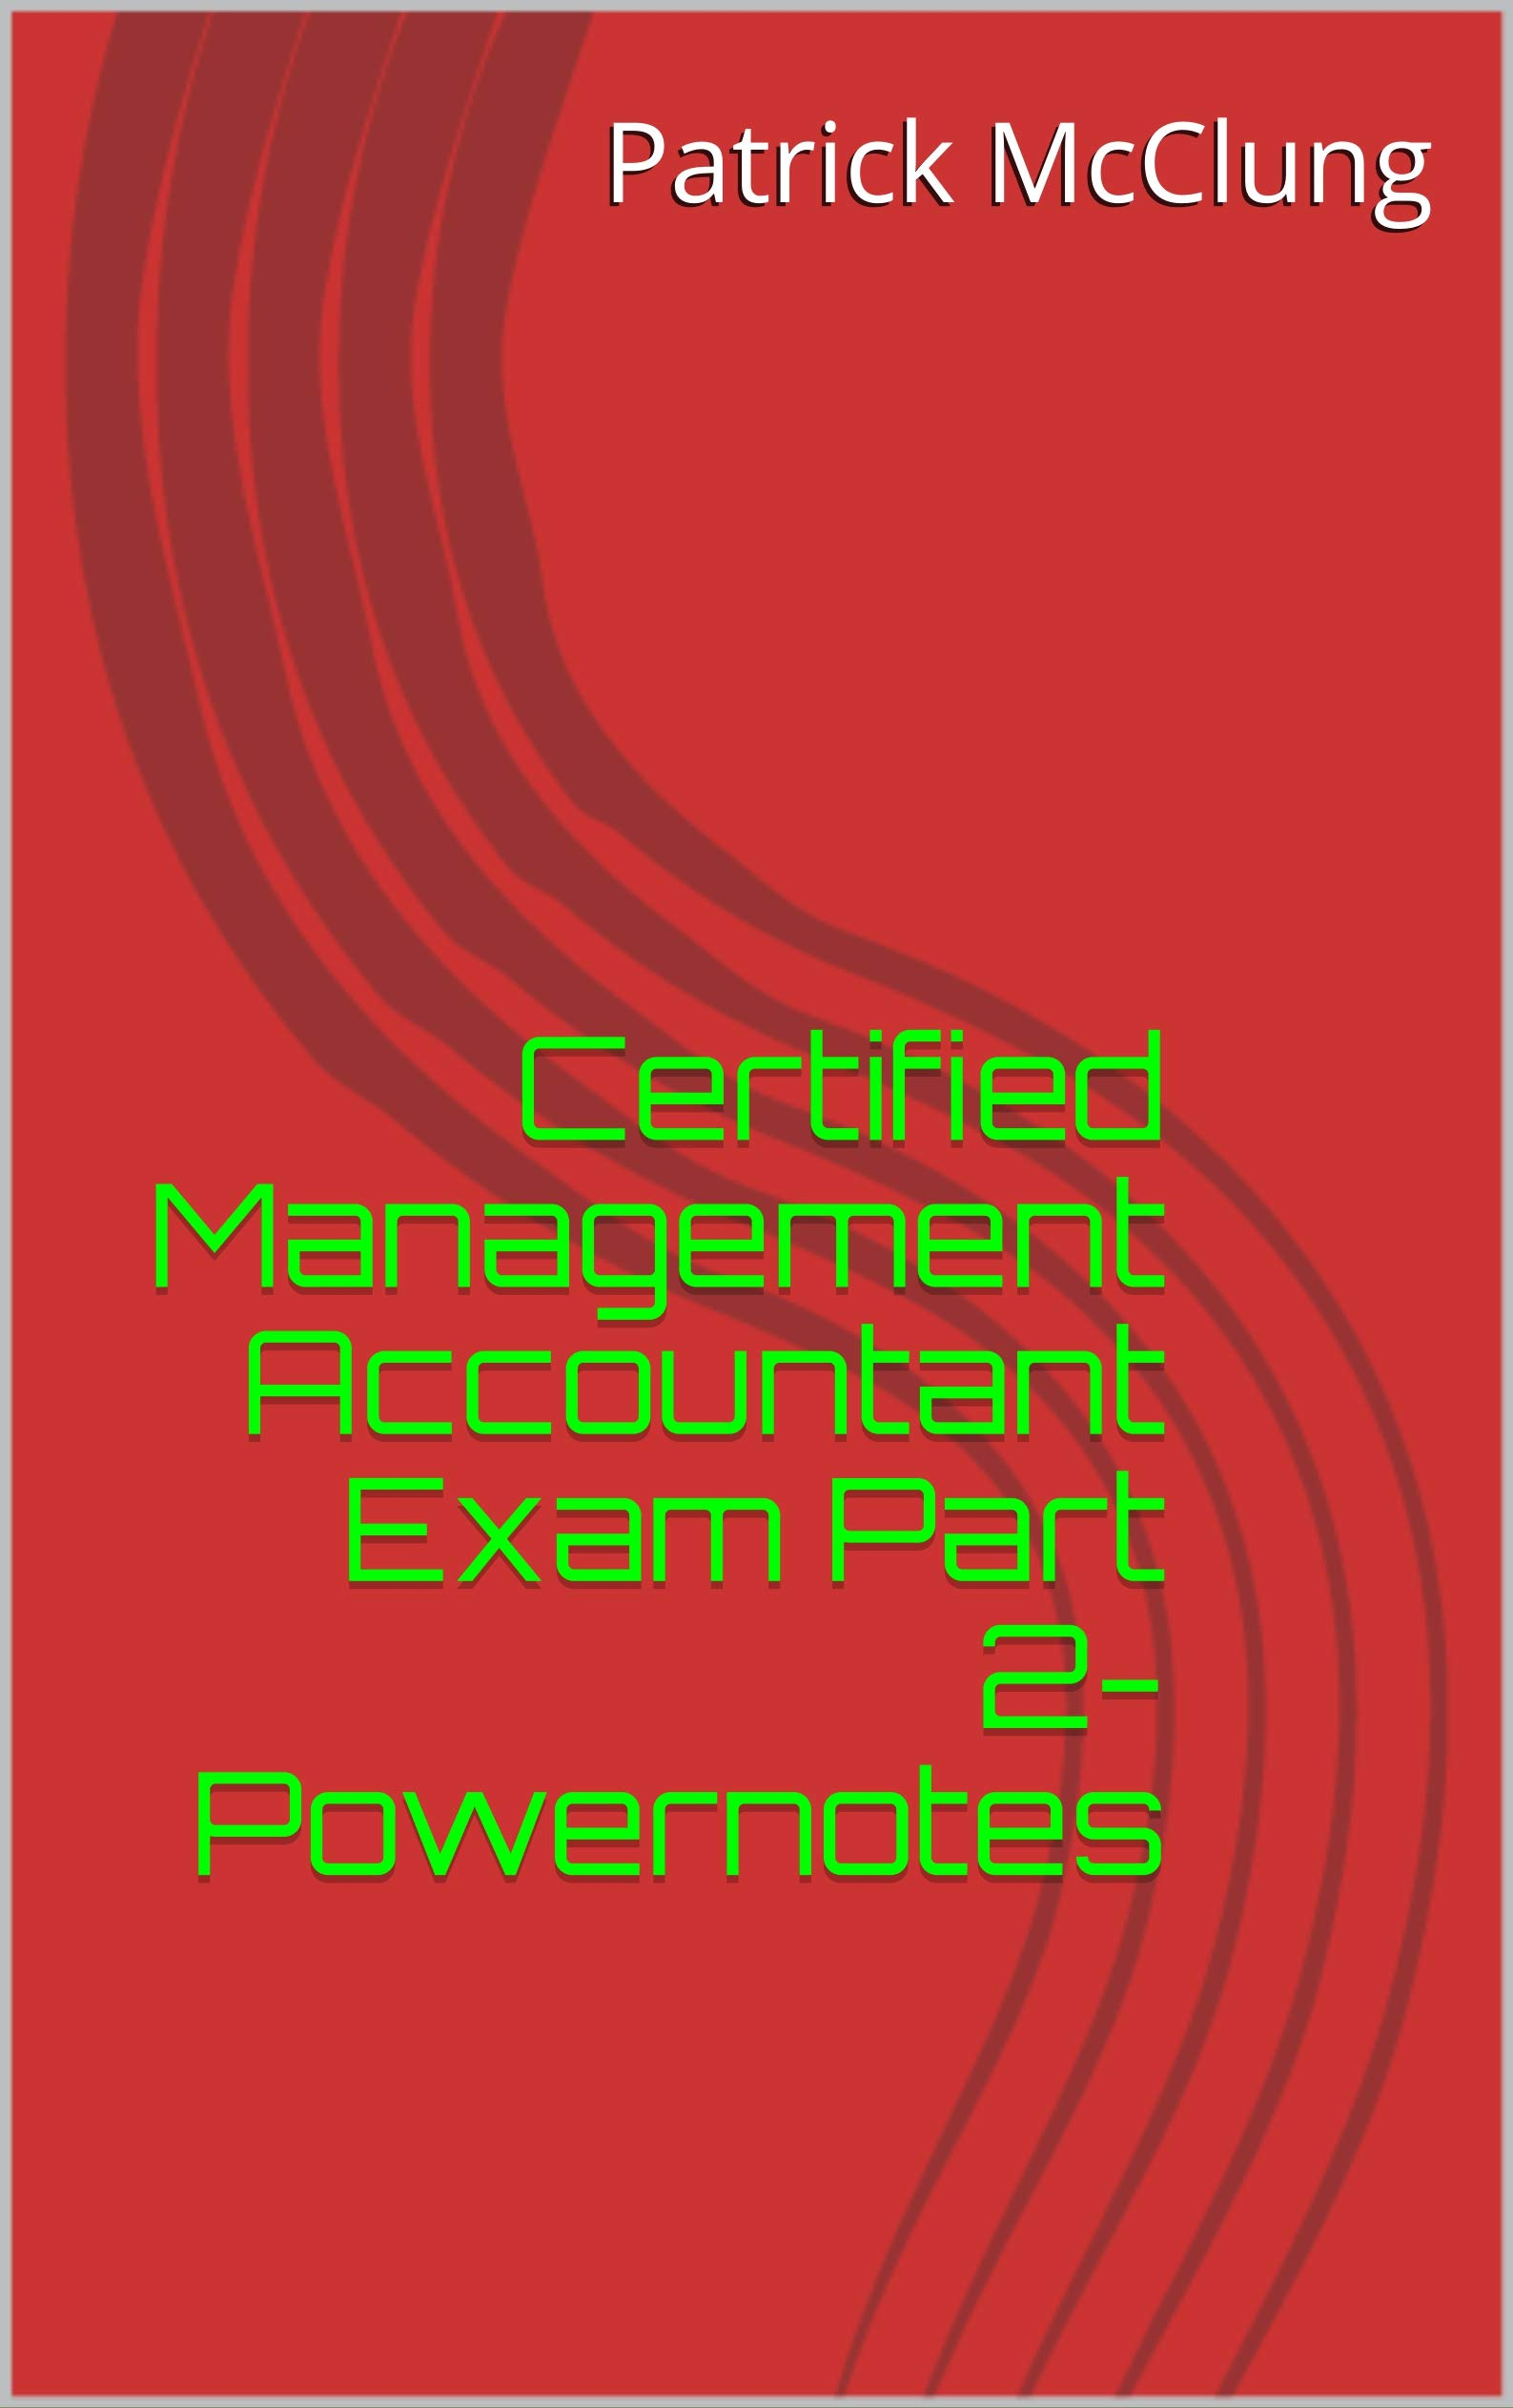 Certified Management Accountant Exam Part 2- Powernotes